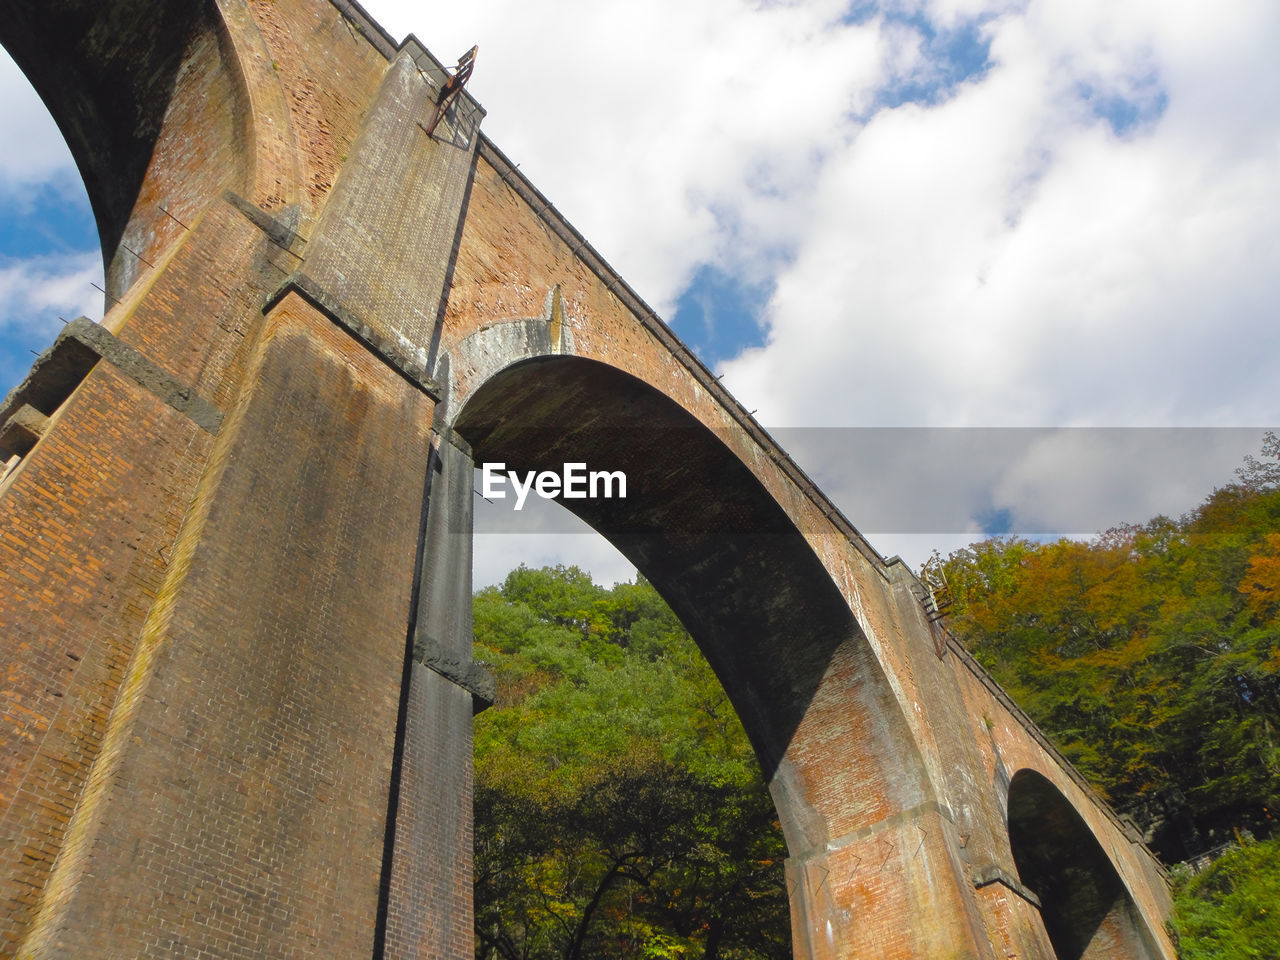 architecture, built structure, sky, arch, cloud - sky, nature, connection, low angle view, day, no people, bridge, bridge - man made structure, plant, tree, transportation, outdoors, arch bridge, history, viaduct